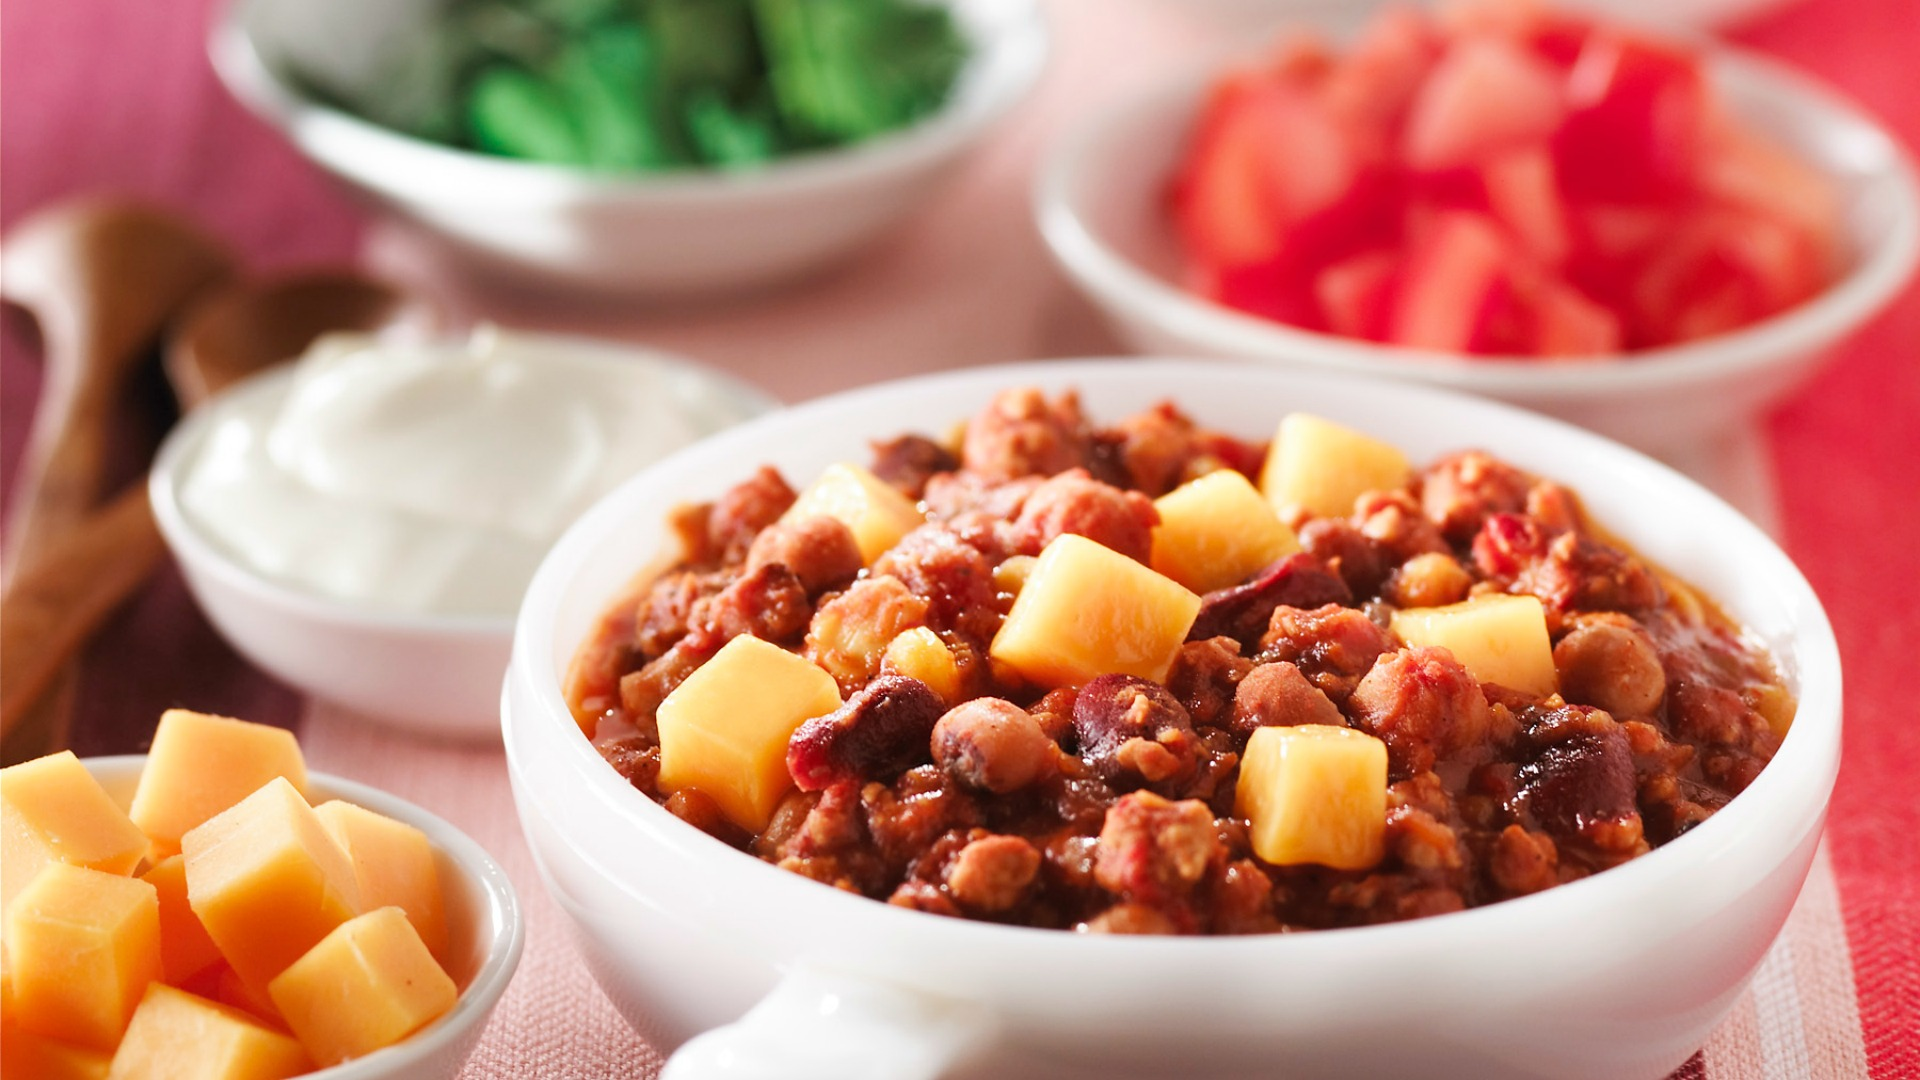 Turkey, bean and cheddar chili served with toppings